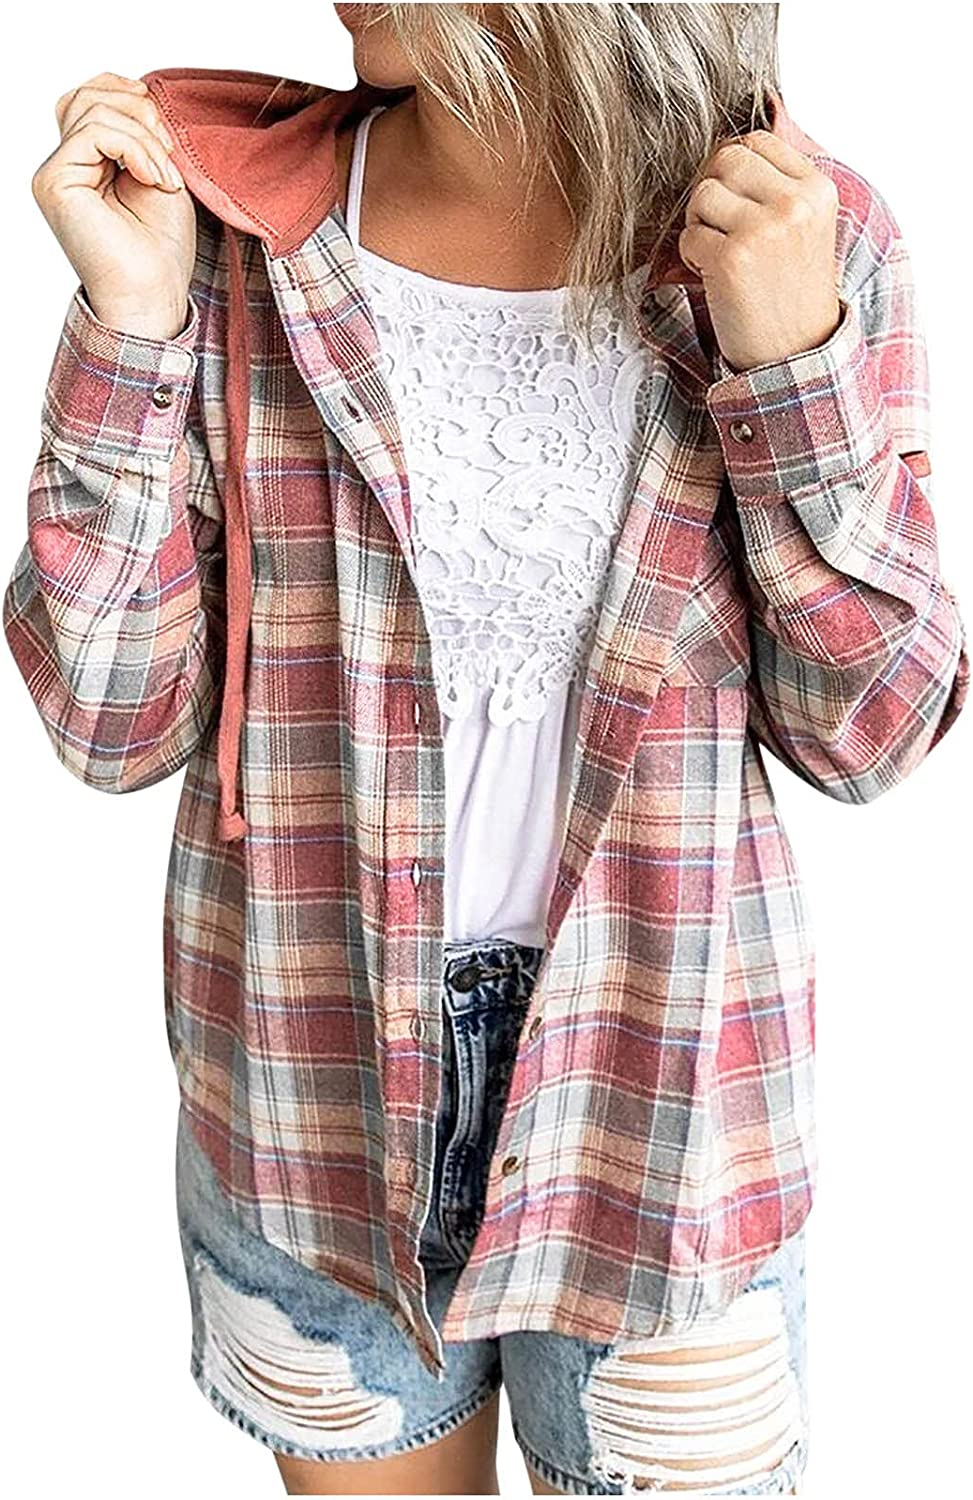 Women's Long Sleeve Drawstring Checked Hooded Jacket Cardigan Casual Button Down Plaid Shirts Hoodie